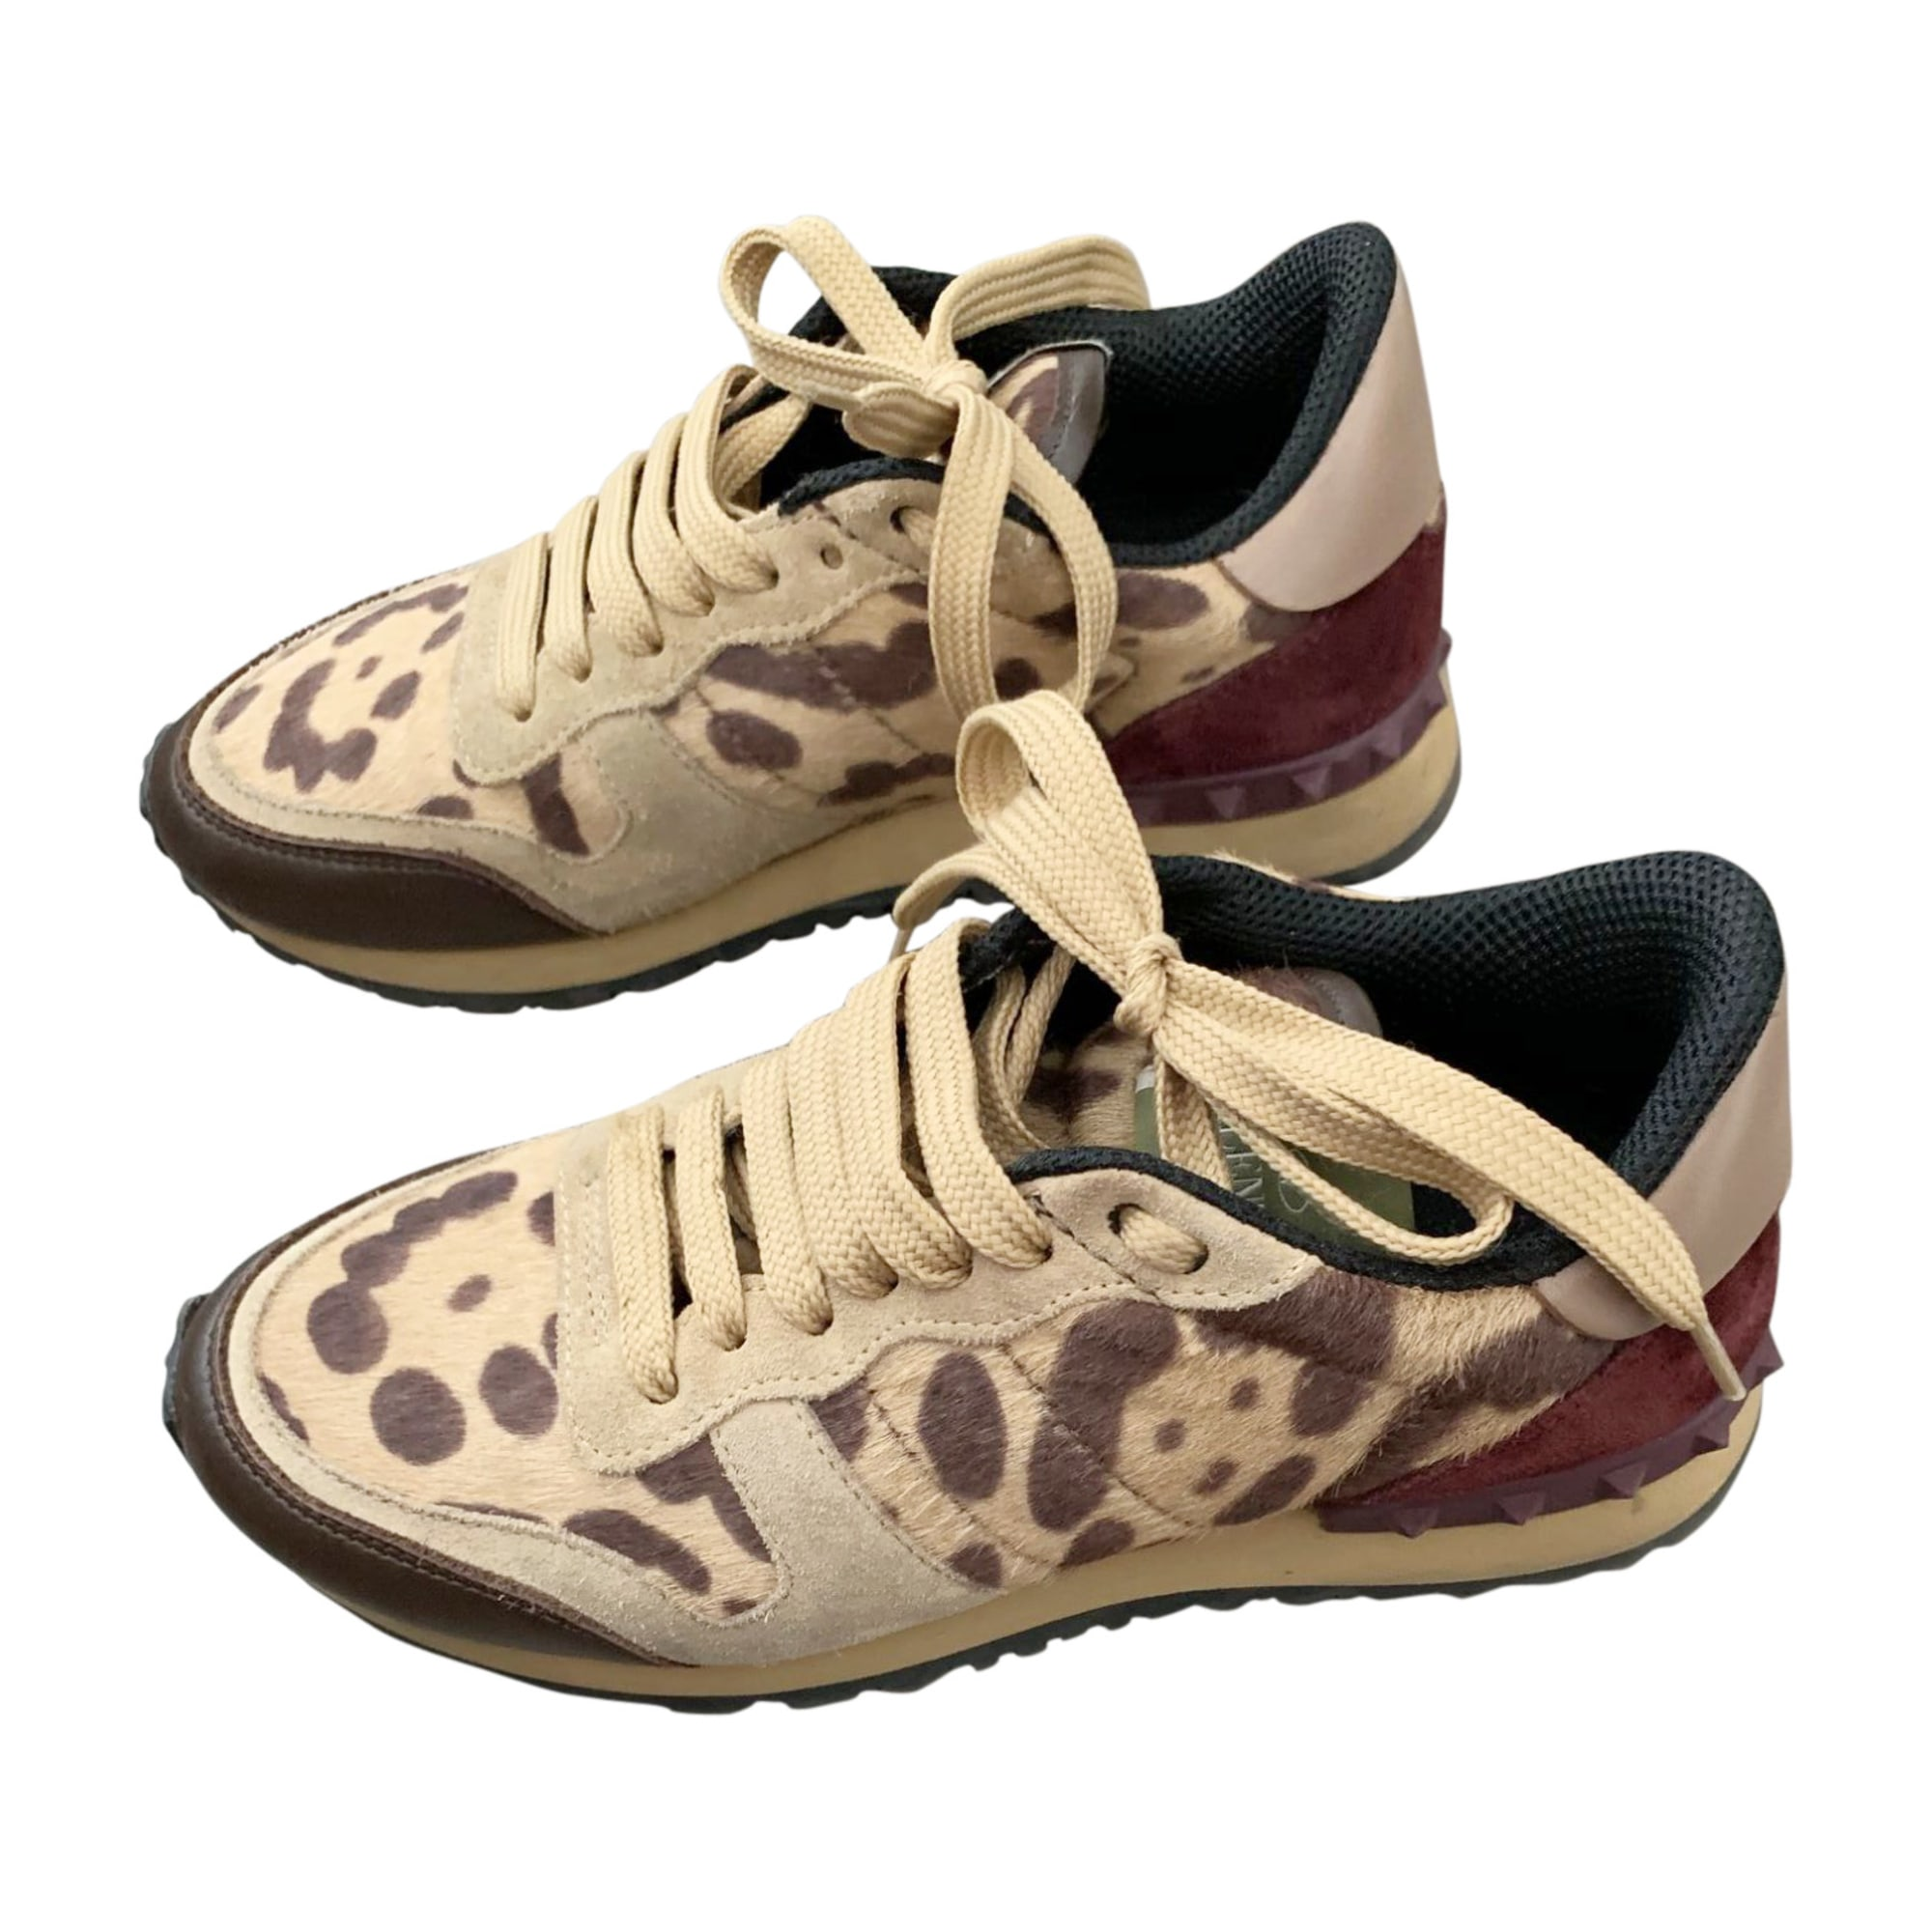 Sneakers VALENTINO Rockstud Animal prints